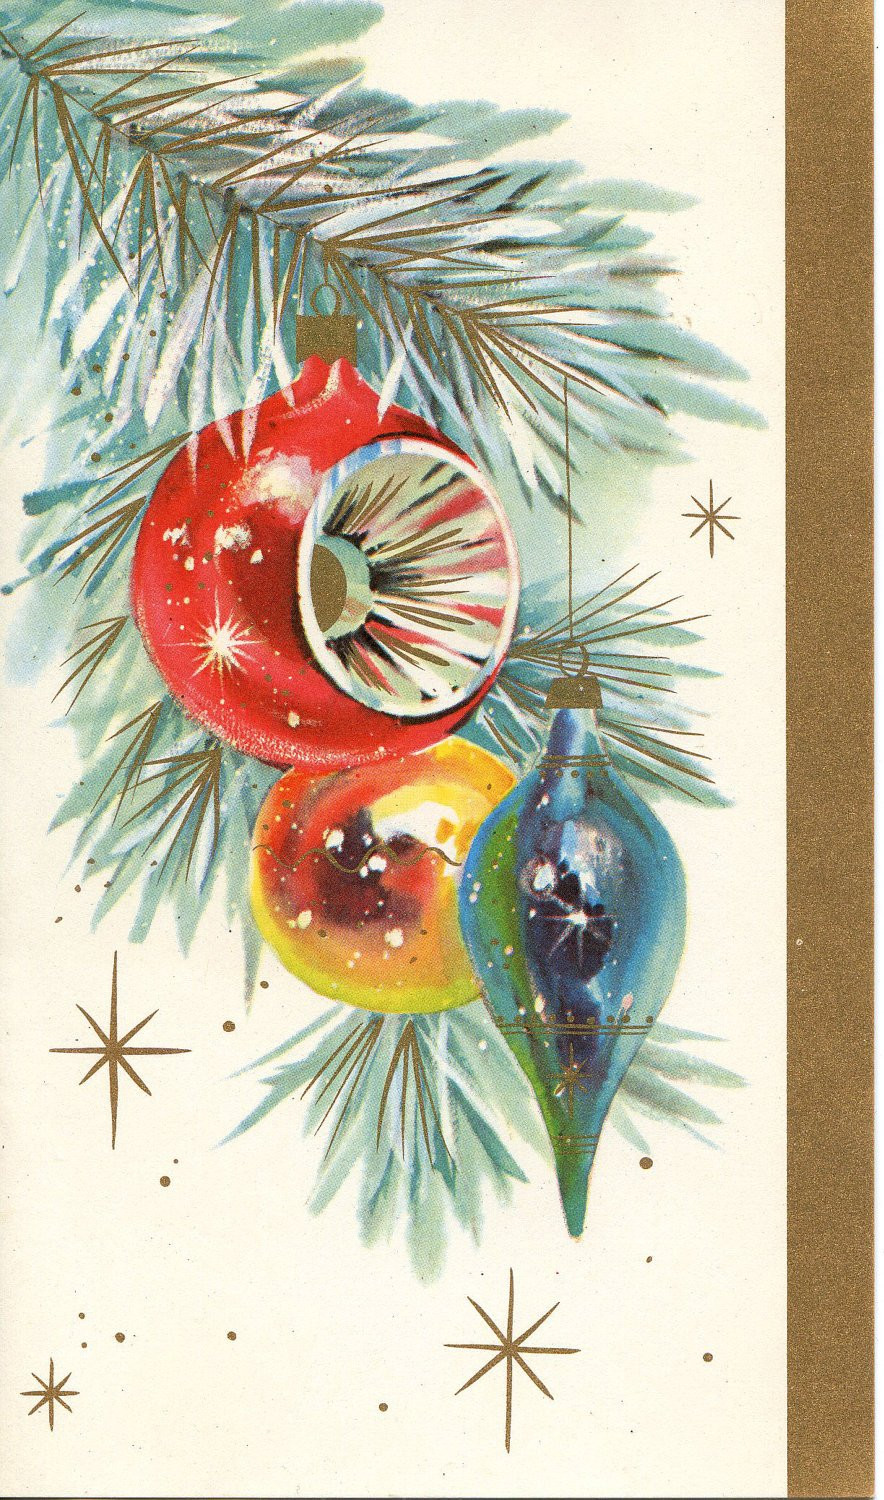 Vintage Christmas ornaments Best Of Vintage Christmas Card ornament Tree Of Lovely 43 Images Vintage Christmas ornaments